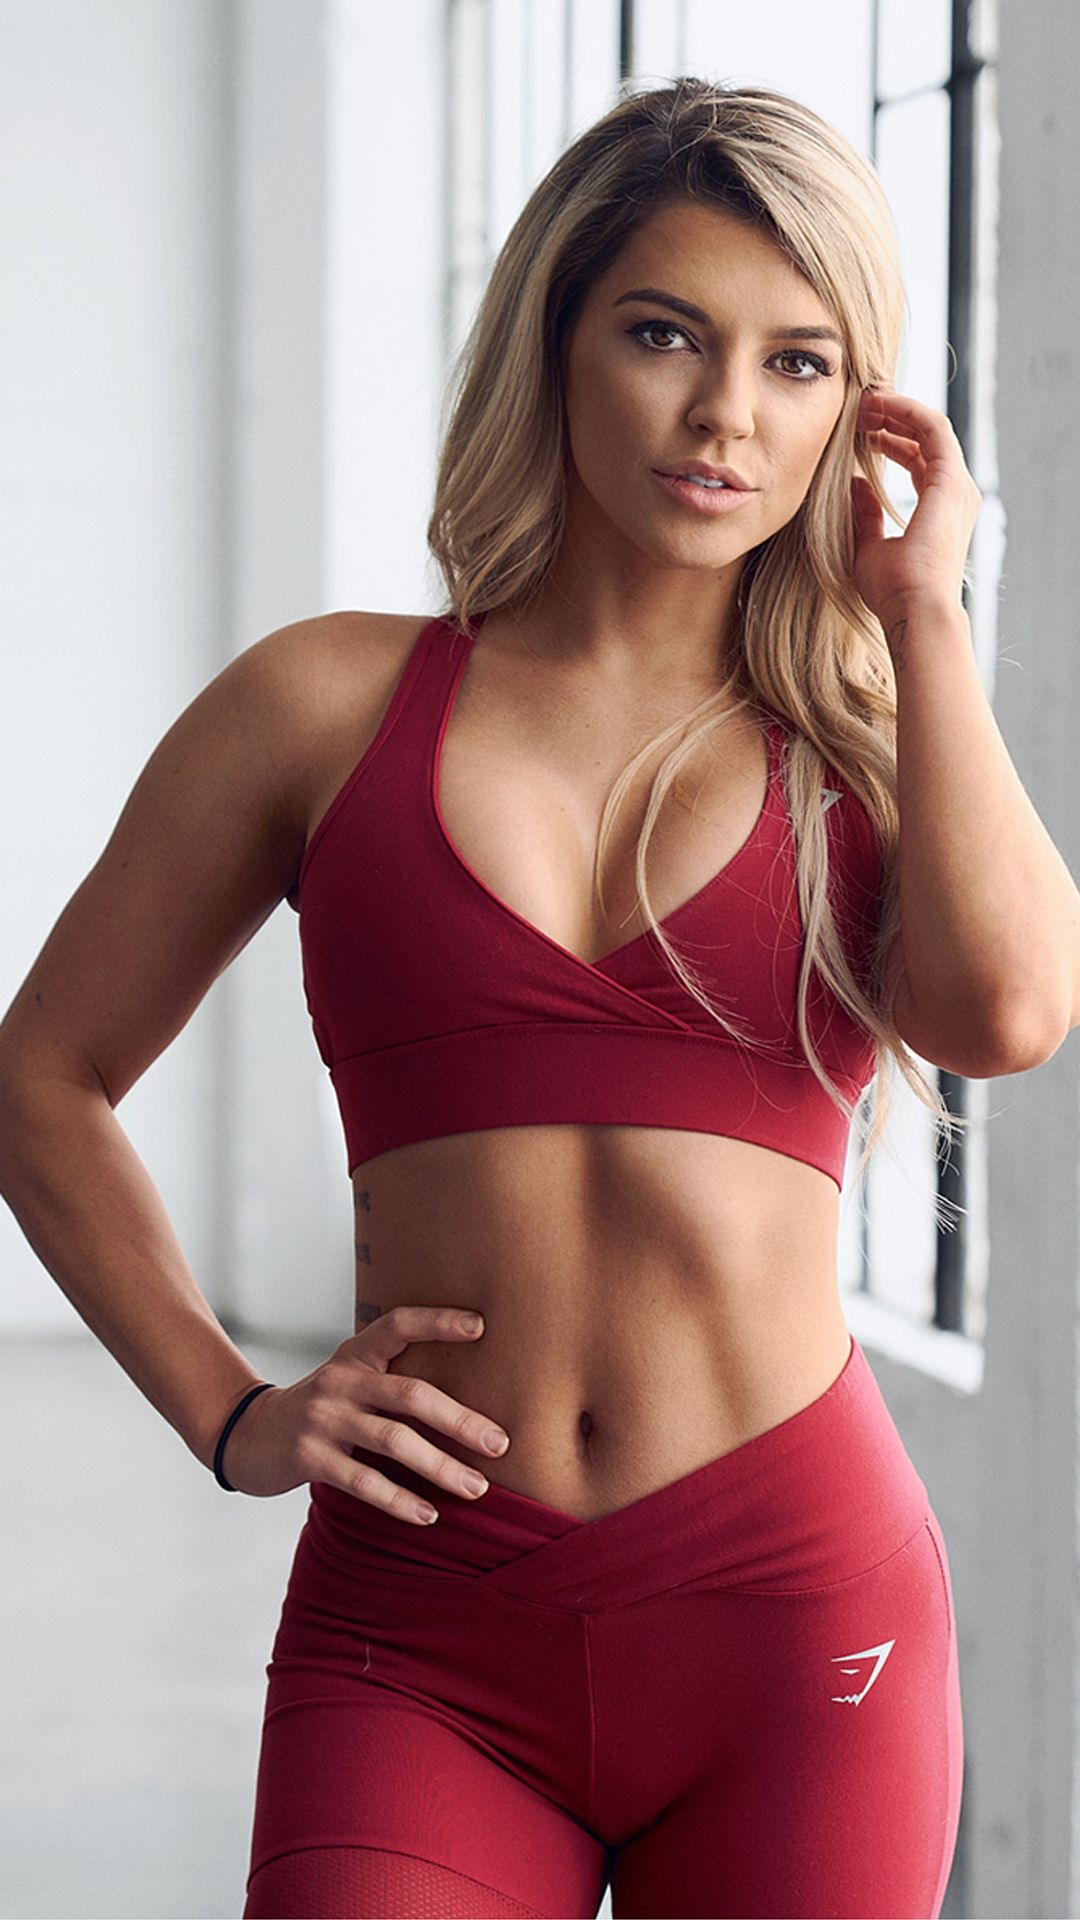 063627b39b050 Nikki Blackketter styling the Cross Back Sports Bra with the Dynamic  leggings from the Gymshark by